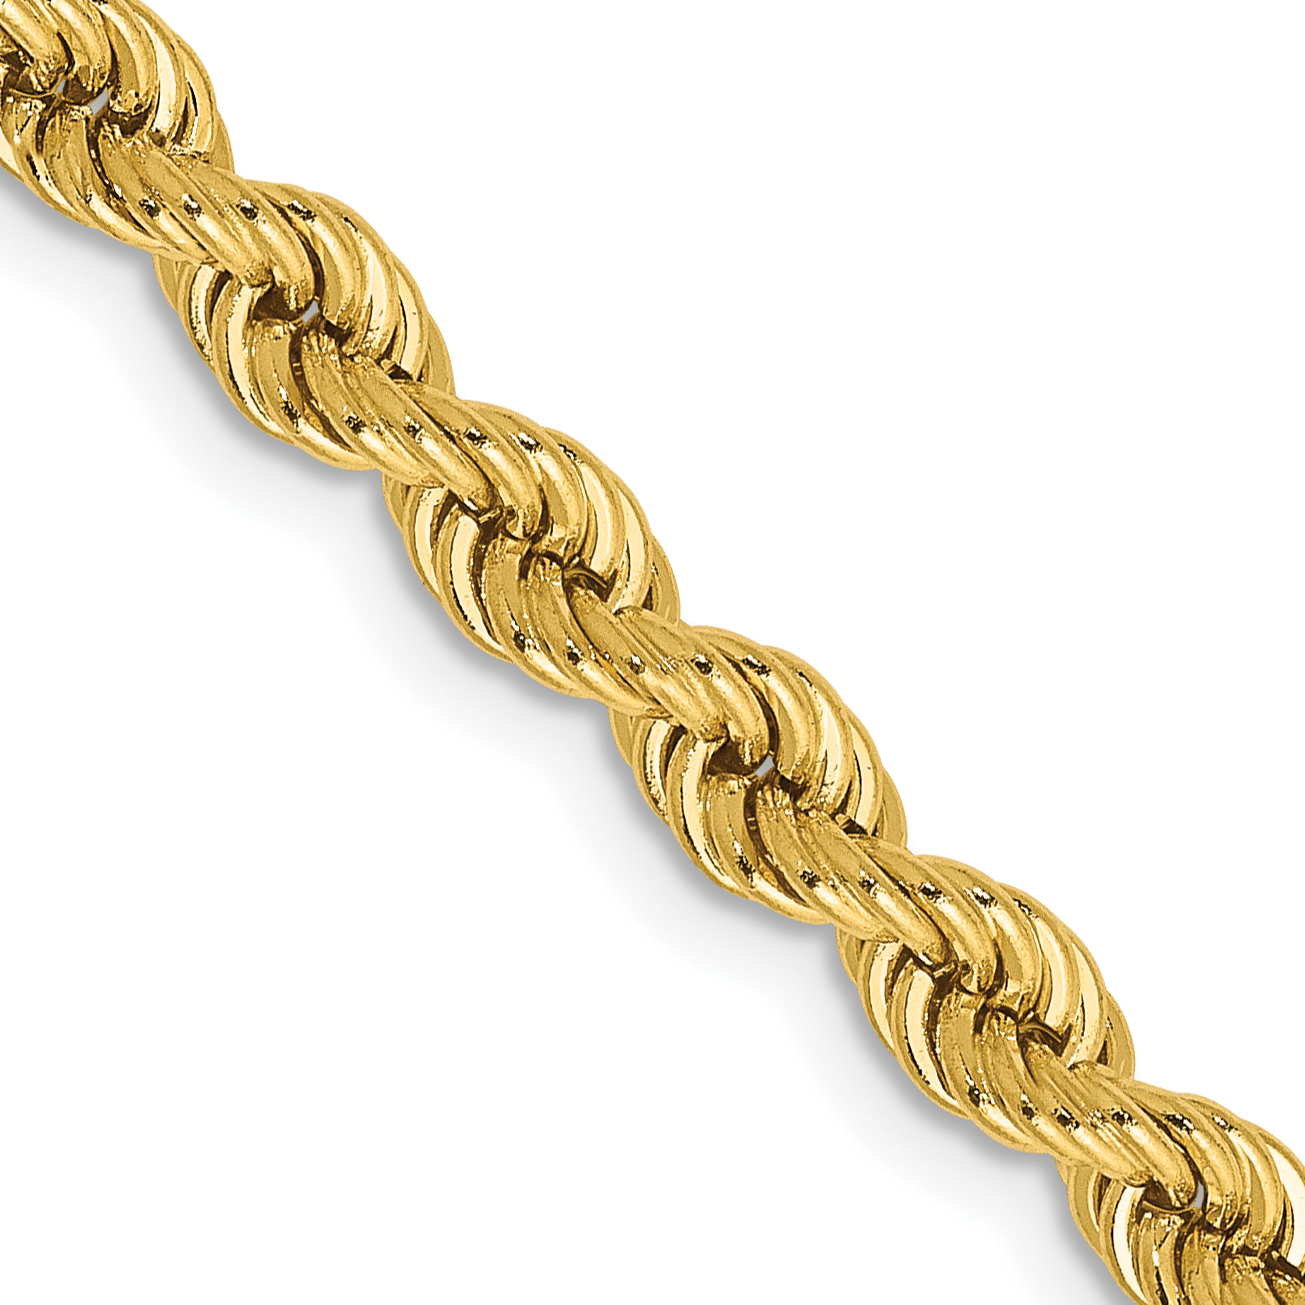 14k 4mm Handmade Regular Rope Chain. Weight: 25.03,  Length: 18